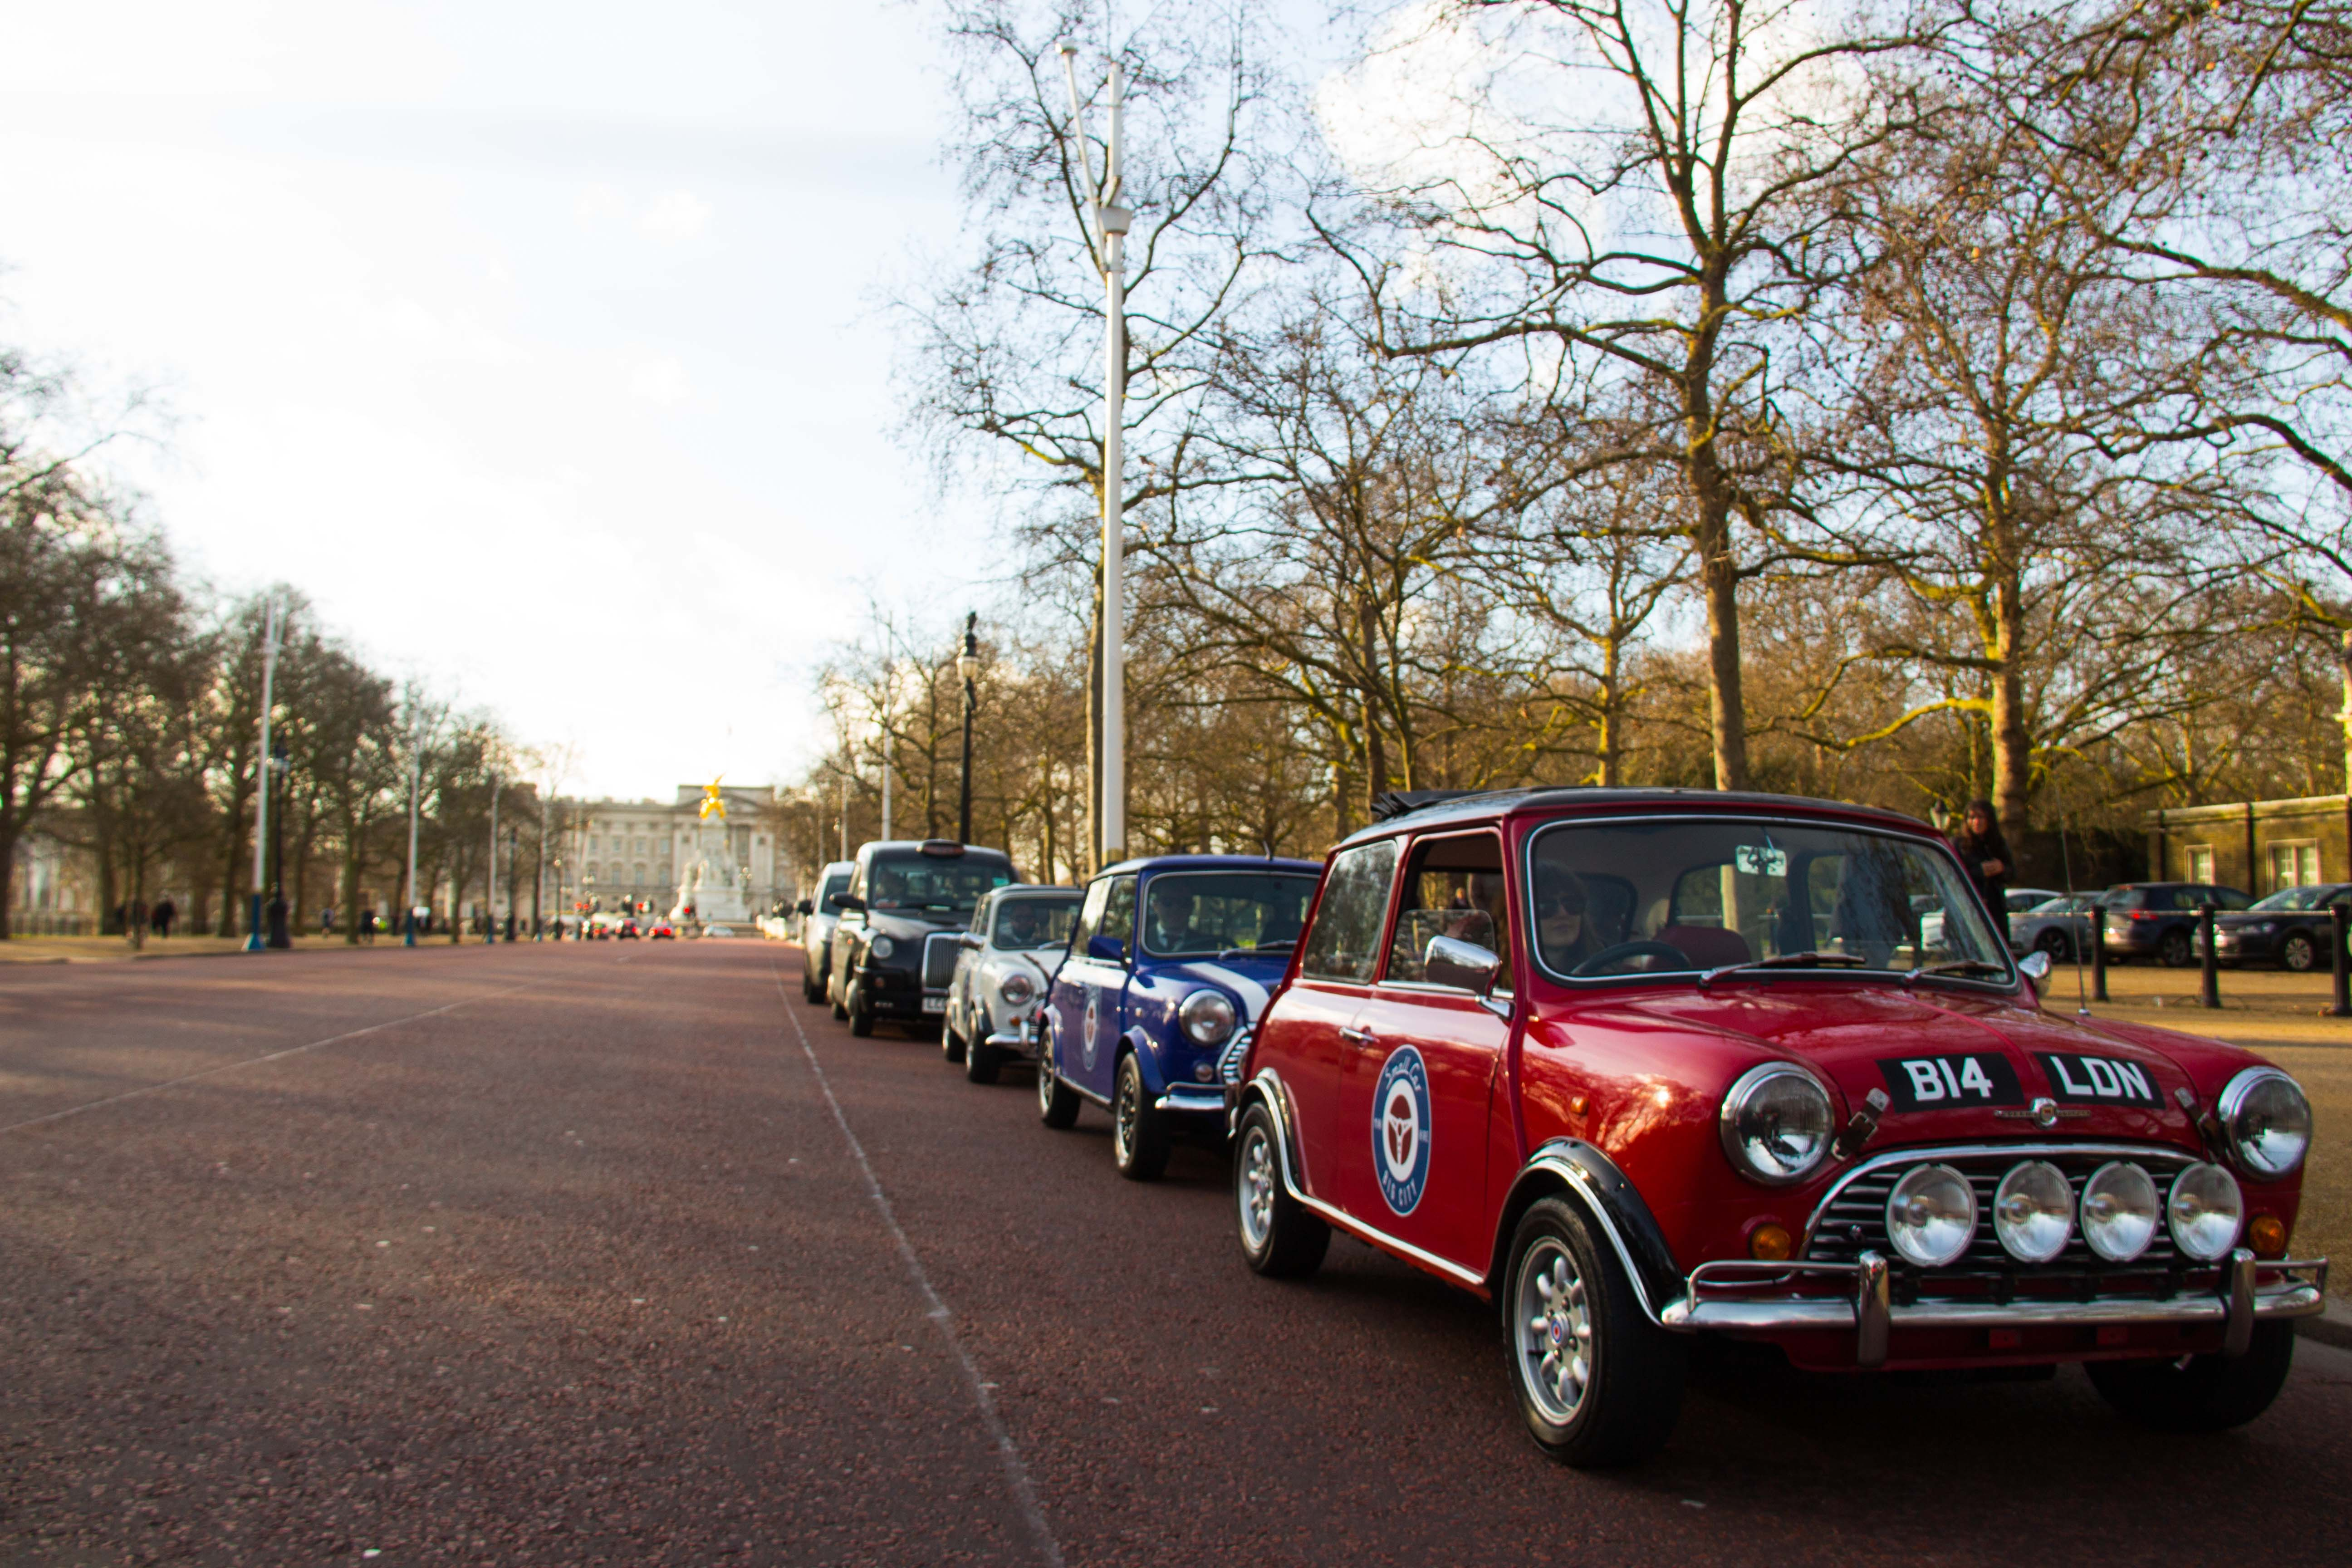 1-car-sharing-marketplace-turo-launches-in-uk-15-12-16